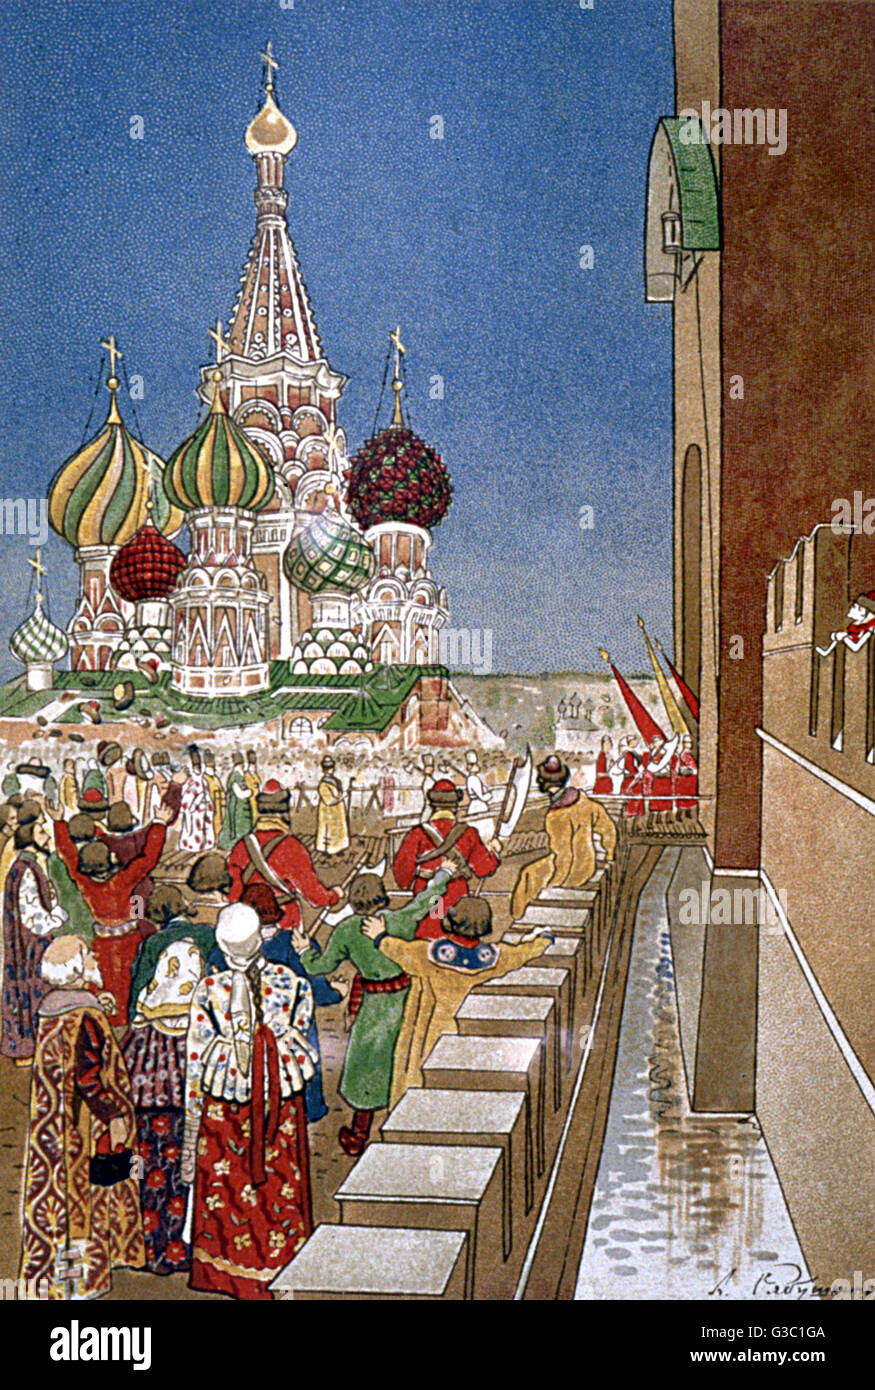 Opera programme illustration, A Life for the Tsar, by Glinka, from a gala performance at the Bolshoi Theatre on - Stock Image